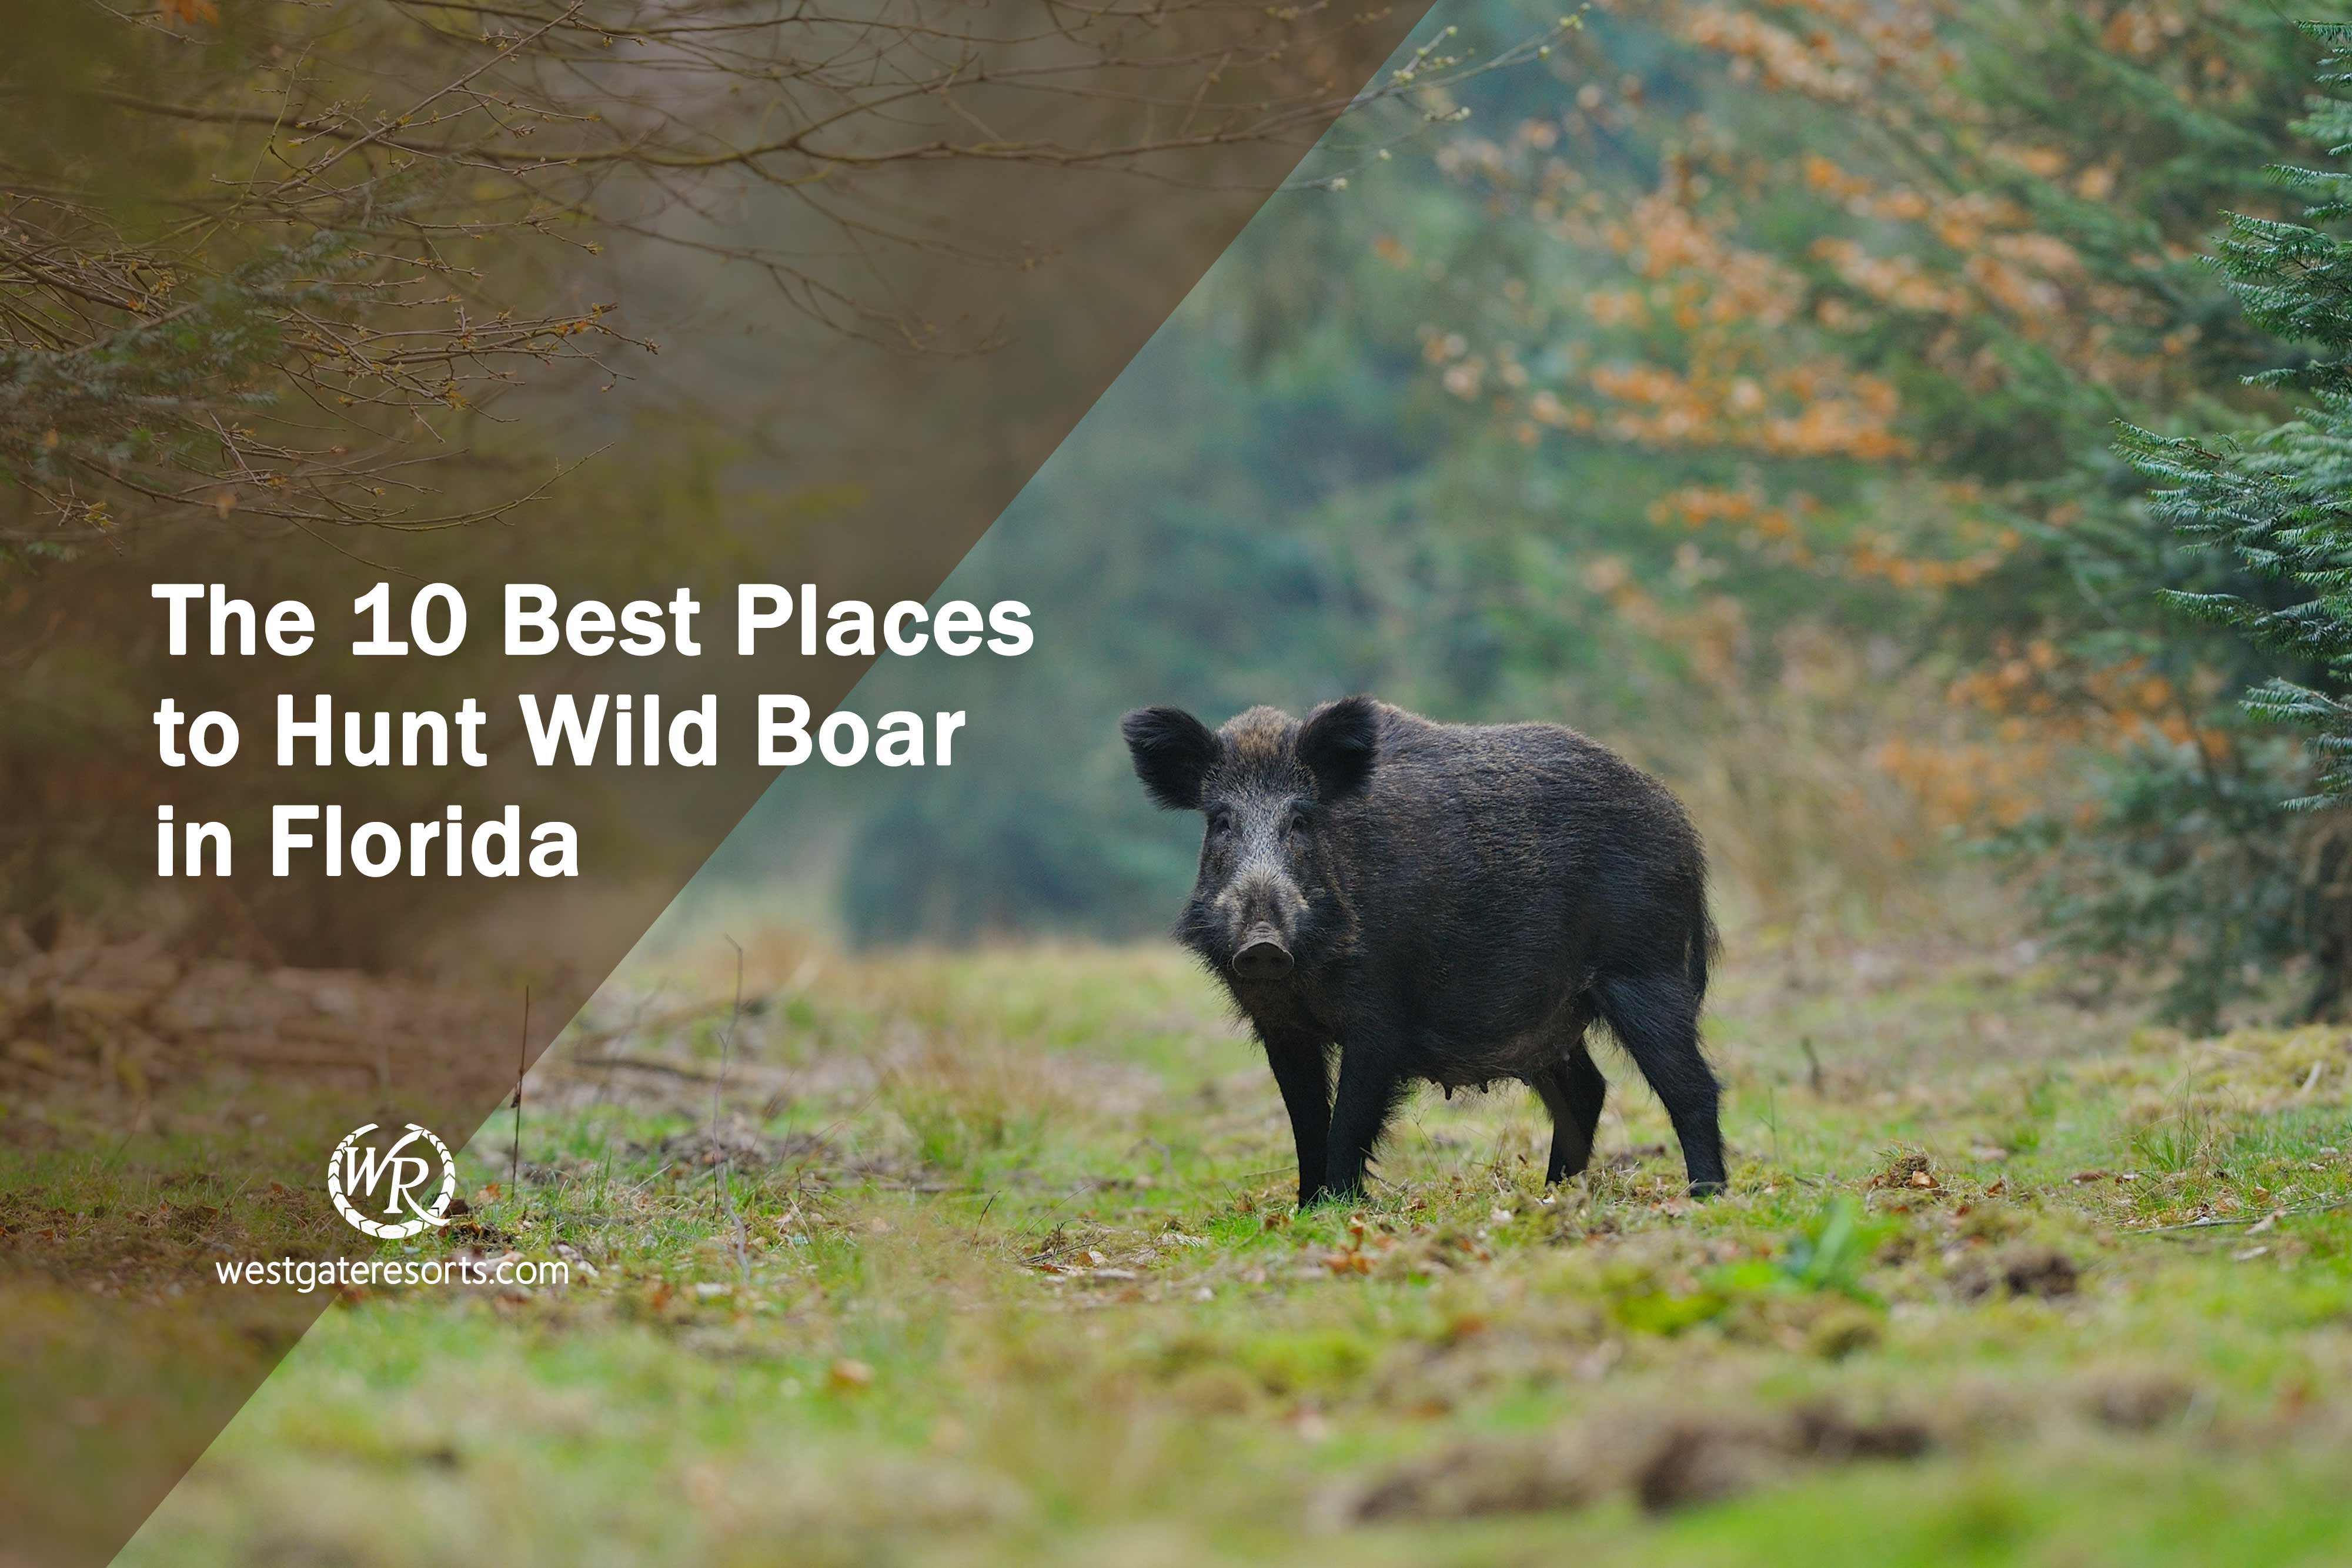 The 10 Best Places to Hunt Wild Boar in Florida